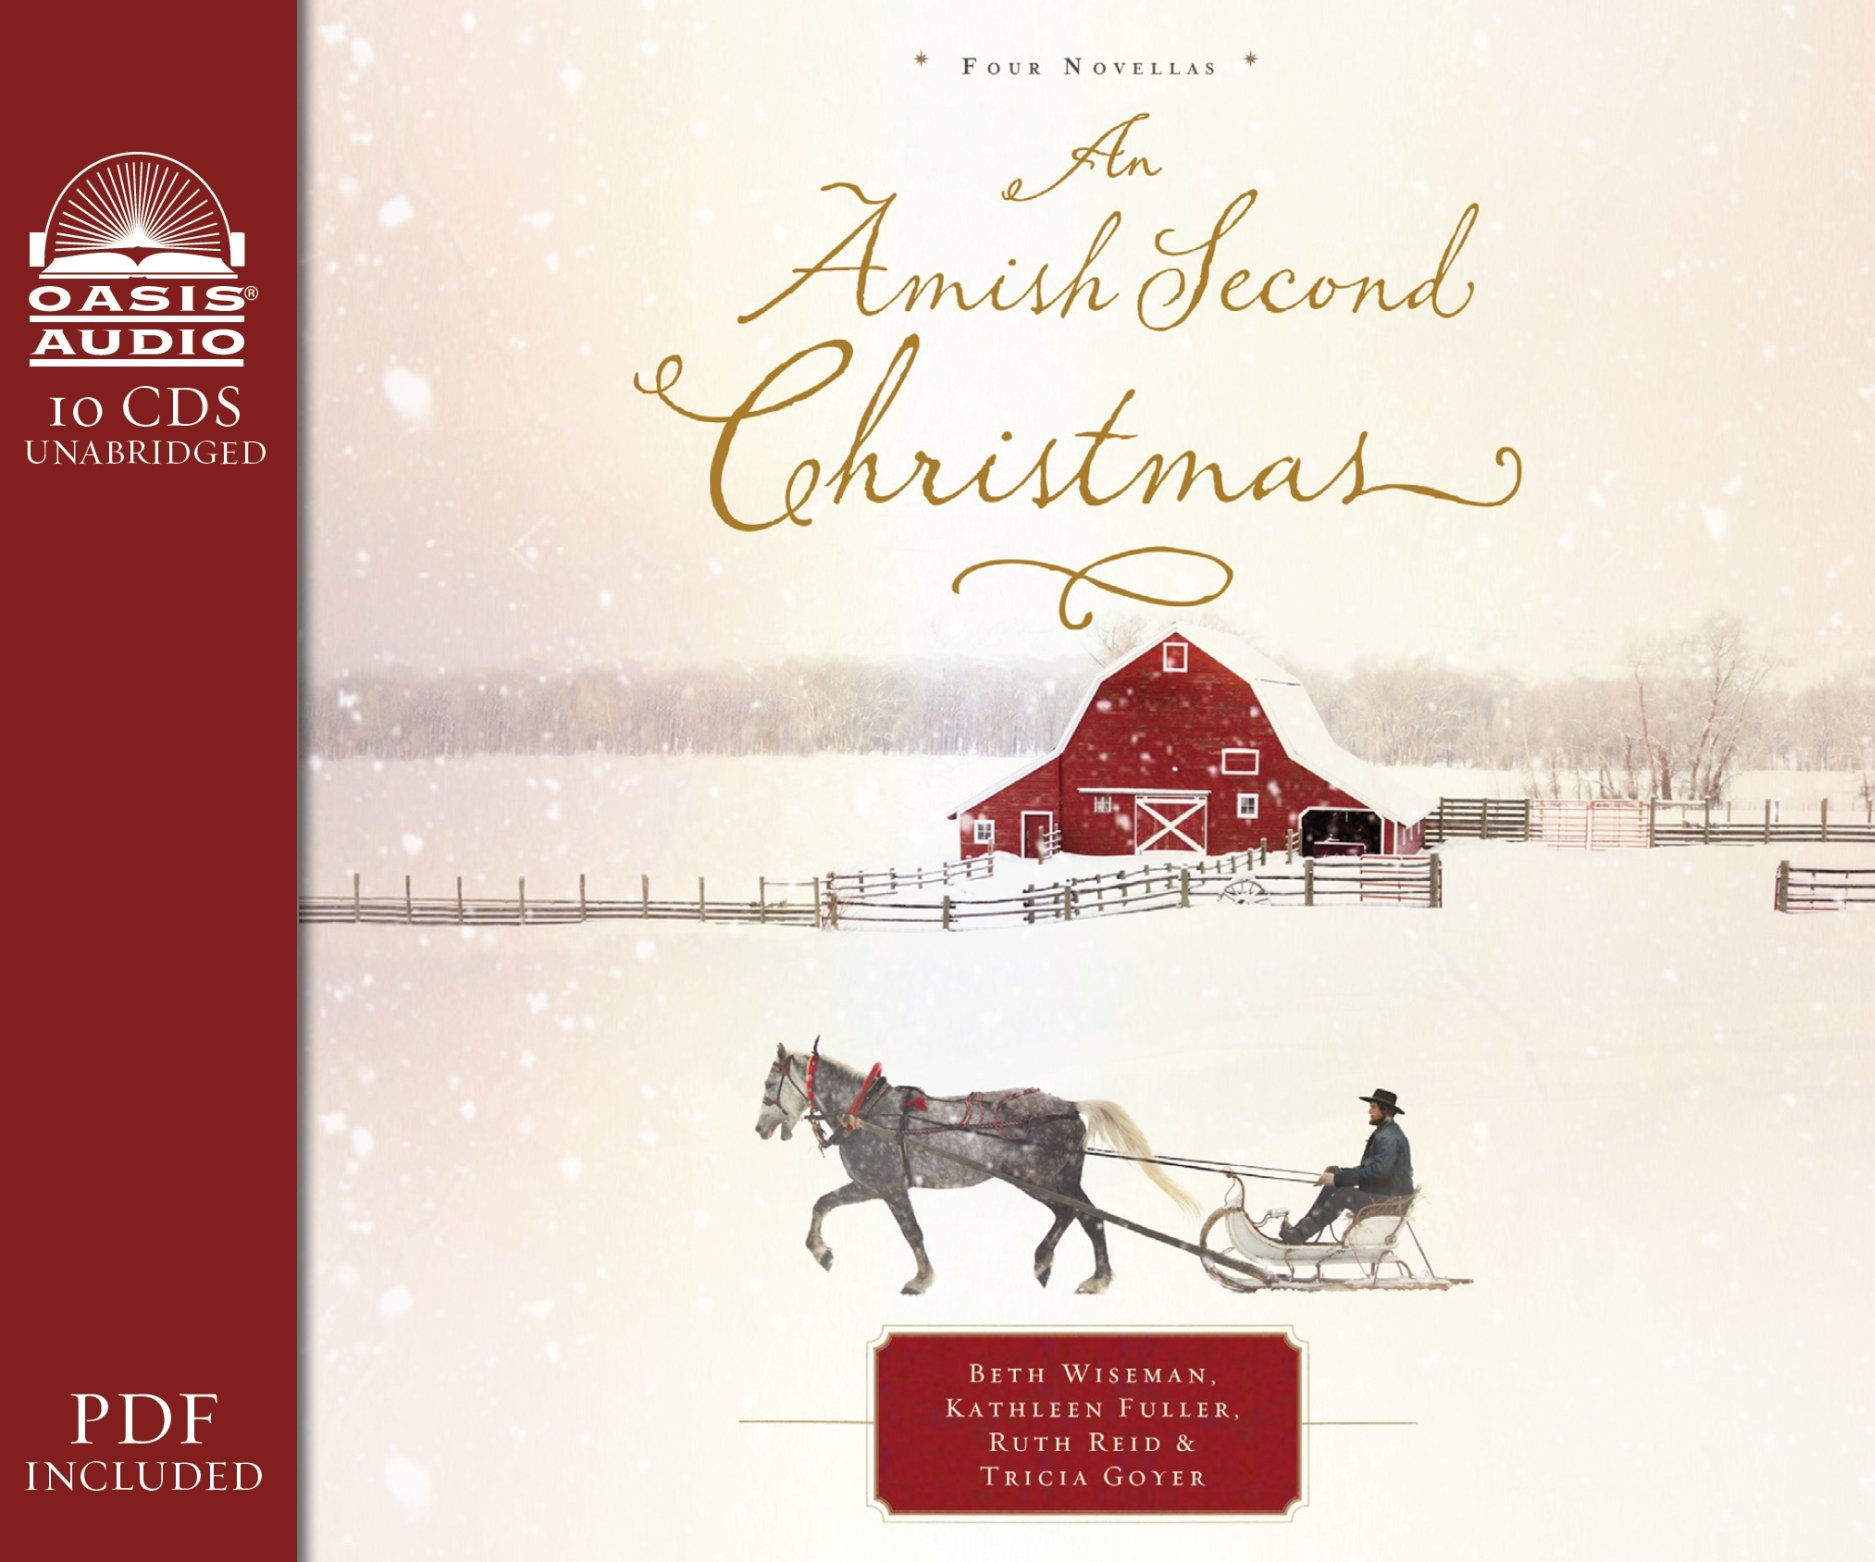 An Amish Second Christmas (Library Edition) by Oasis Audio